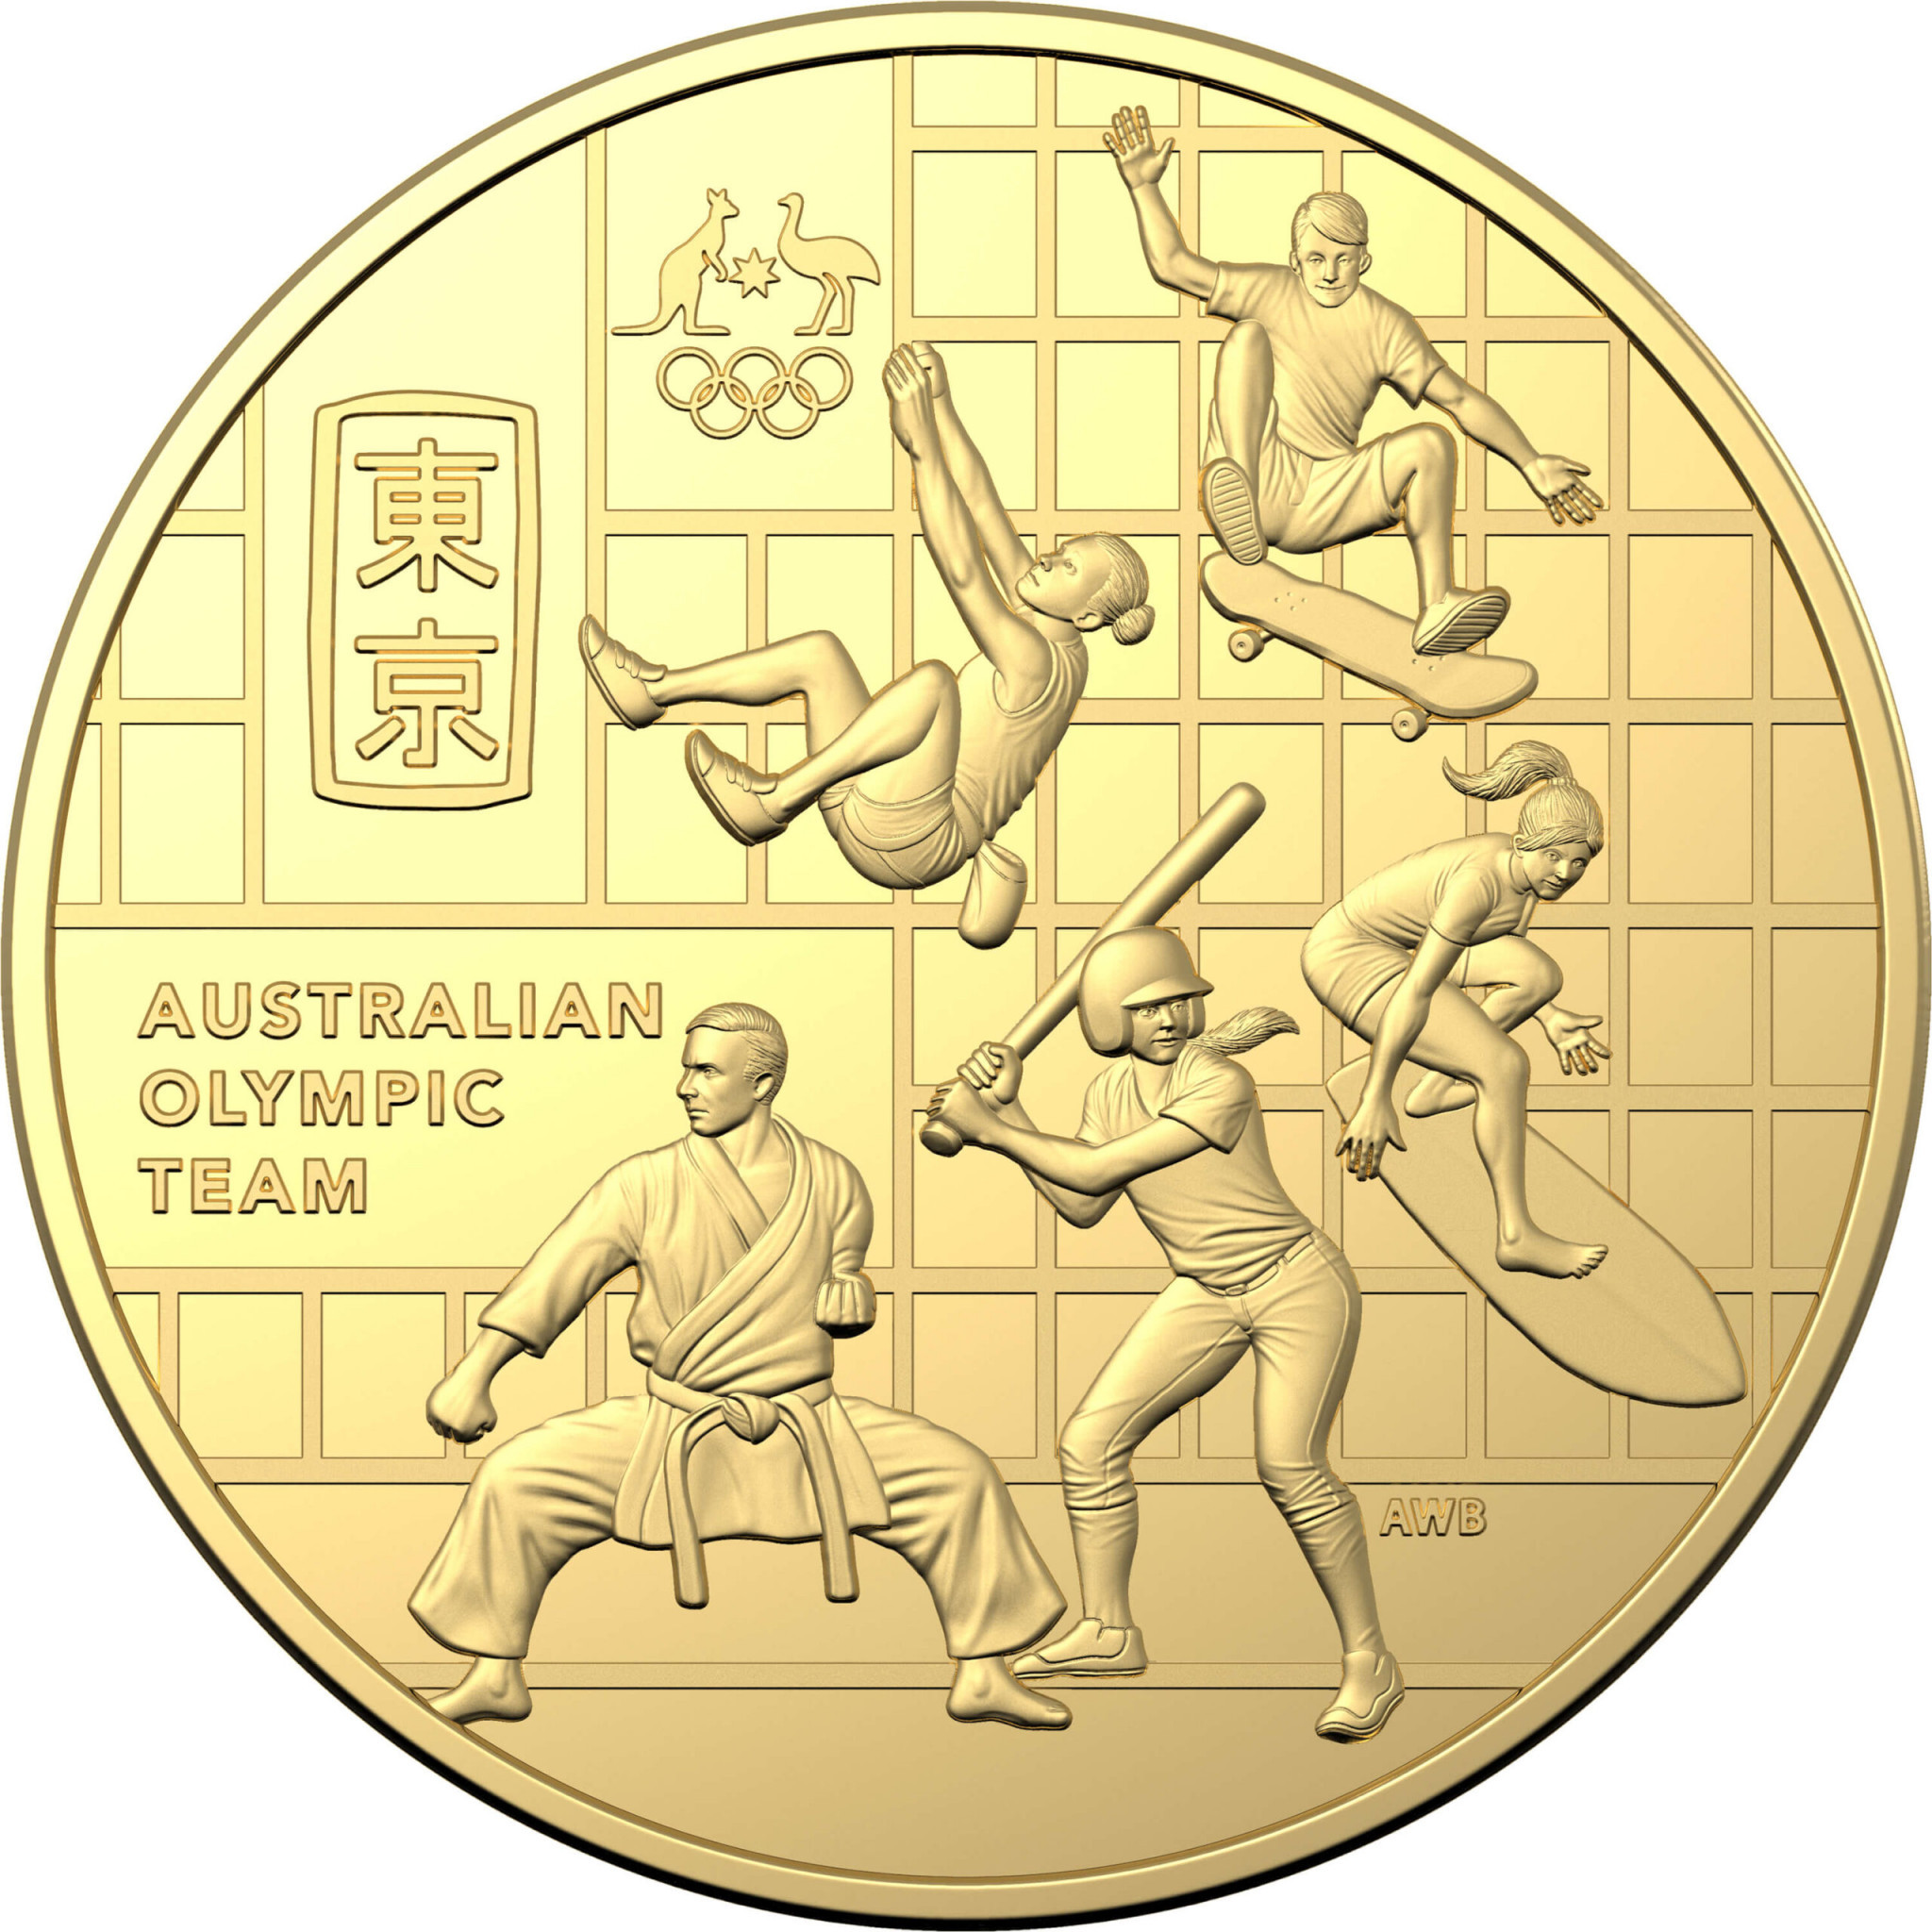 The Australian Royal Mint have produced special Olympic collector coins marking the introduction of five new sports - baseball and softball, karate, skateboarding, sport climbing and surfing - added to the 2020 programme ©Royal Australian Mint